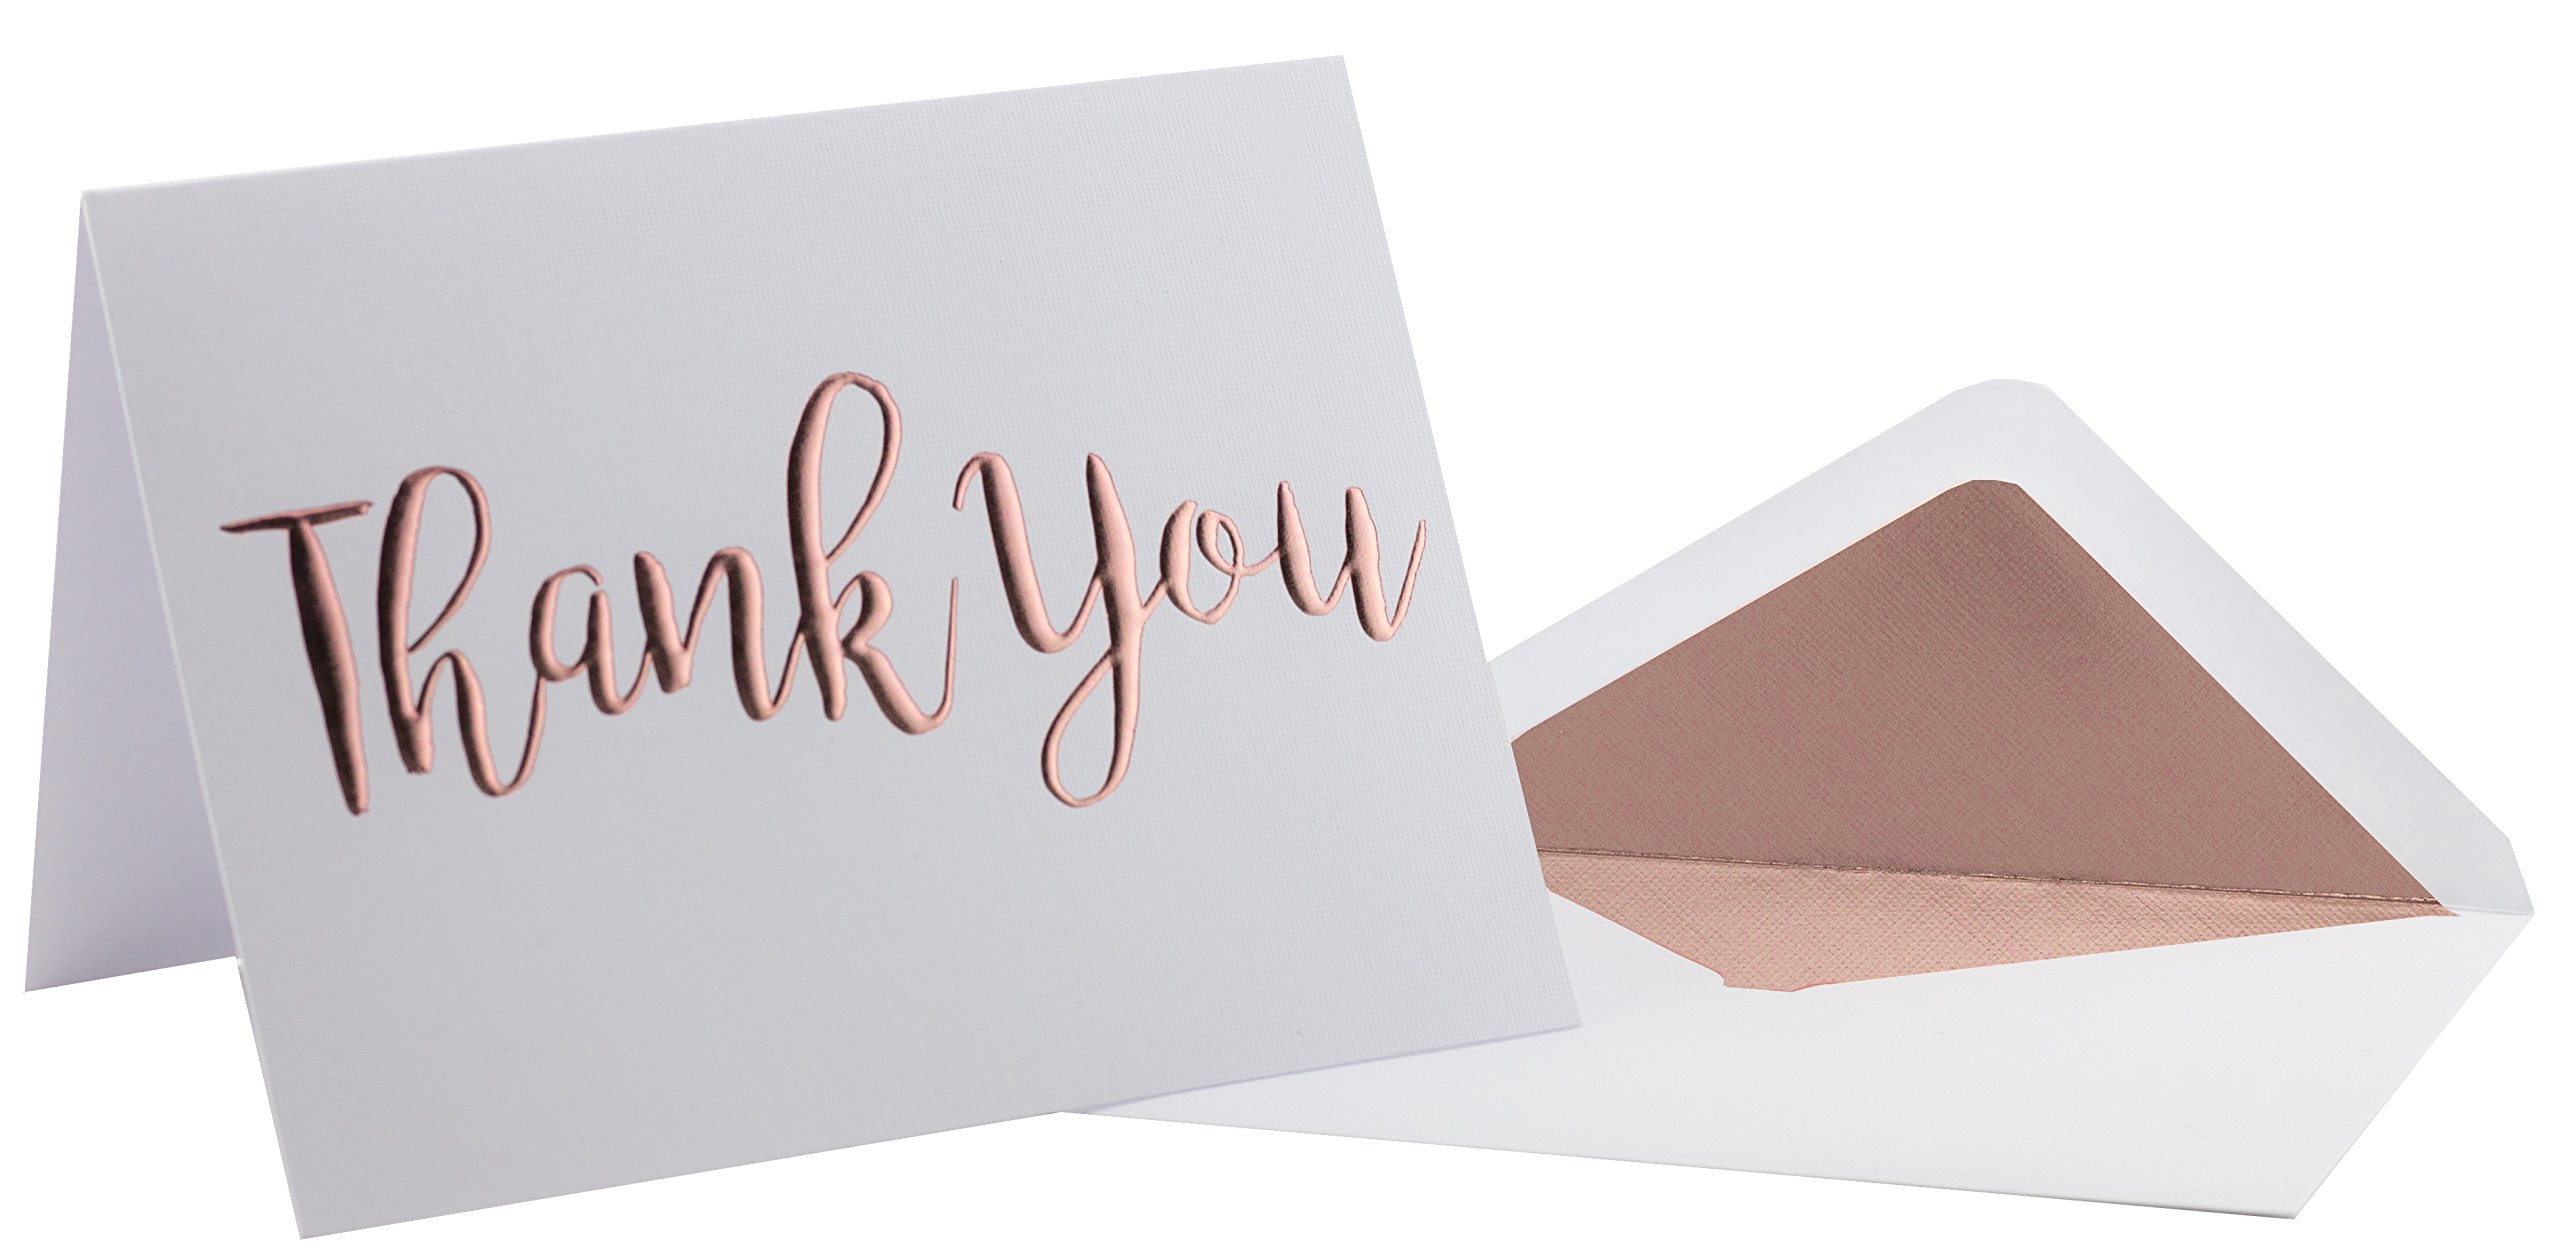 Thank You Cards - 20 Pack - Rose Gold Foil ''Thank You'' on Heavyweight Linen Texture Cardstock - Box of 20 Premium Thank You Cards with 20 Foil Lined Envelopes (A2) 5.5'' x 4.25''